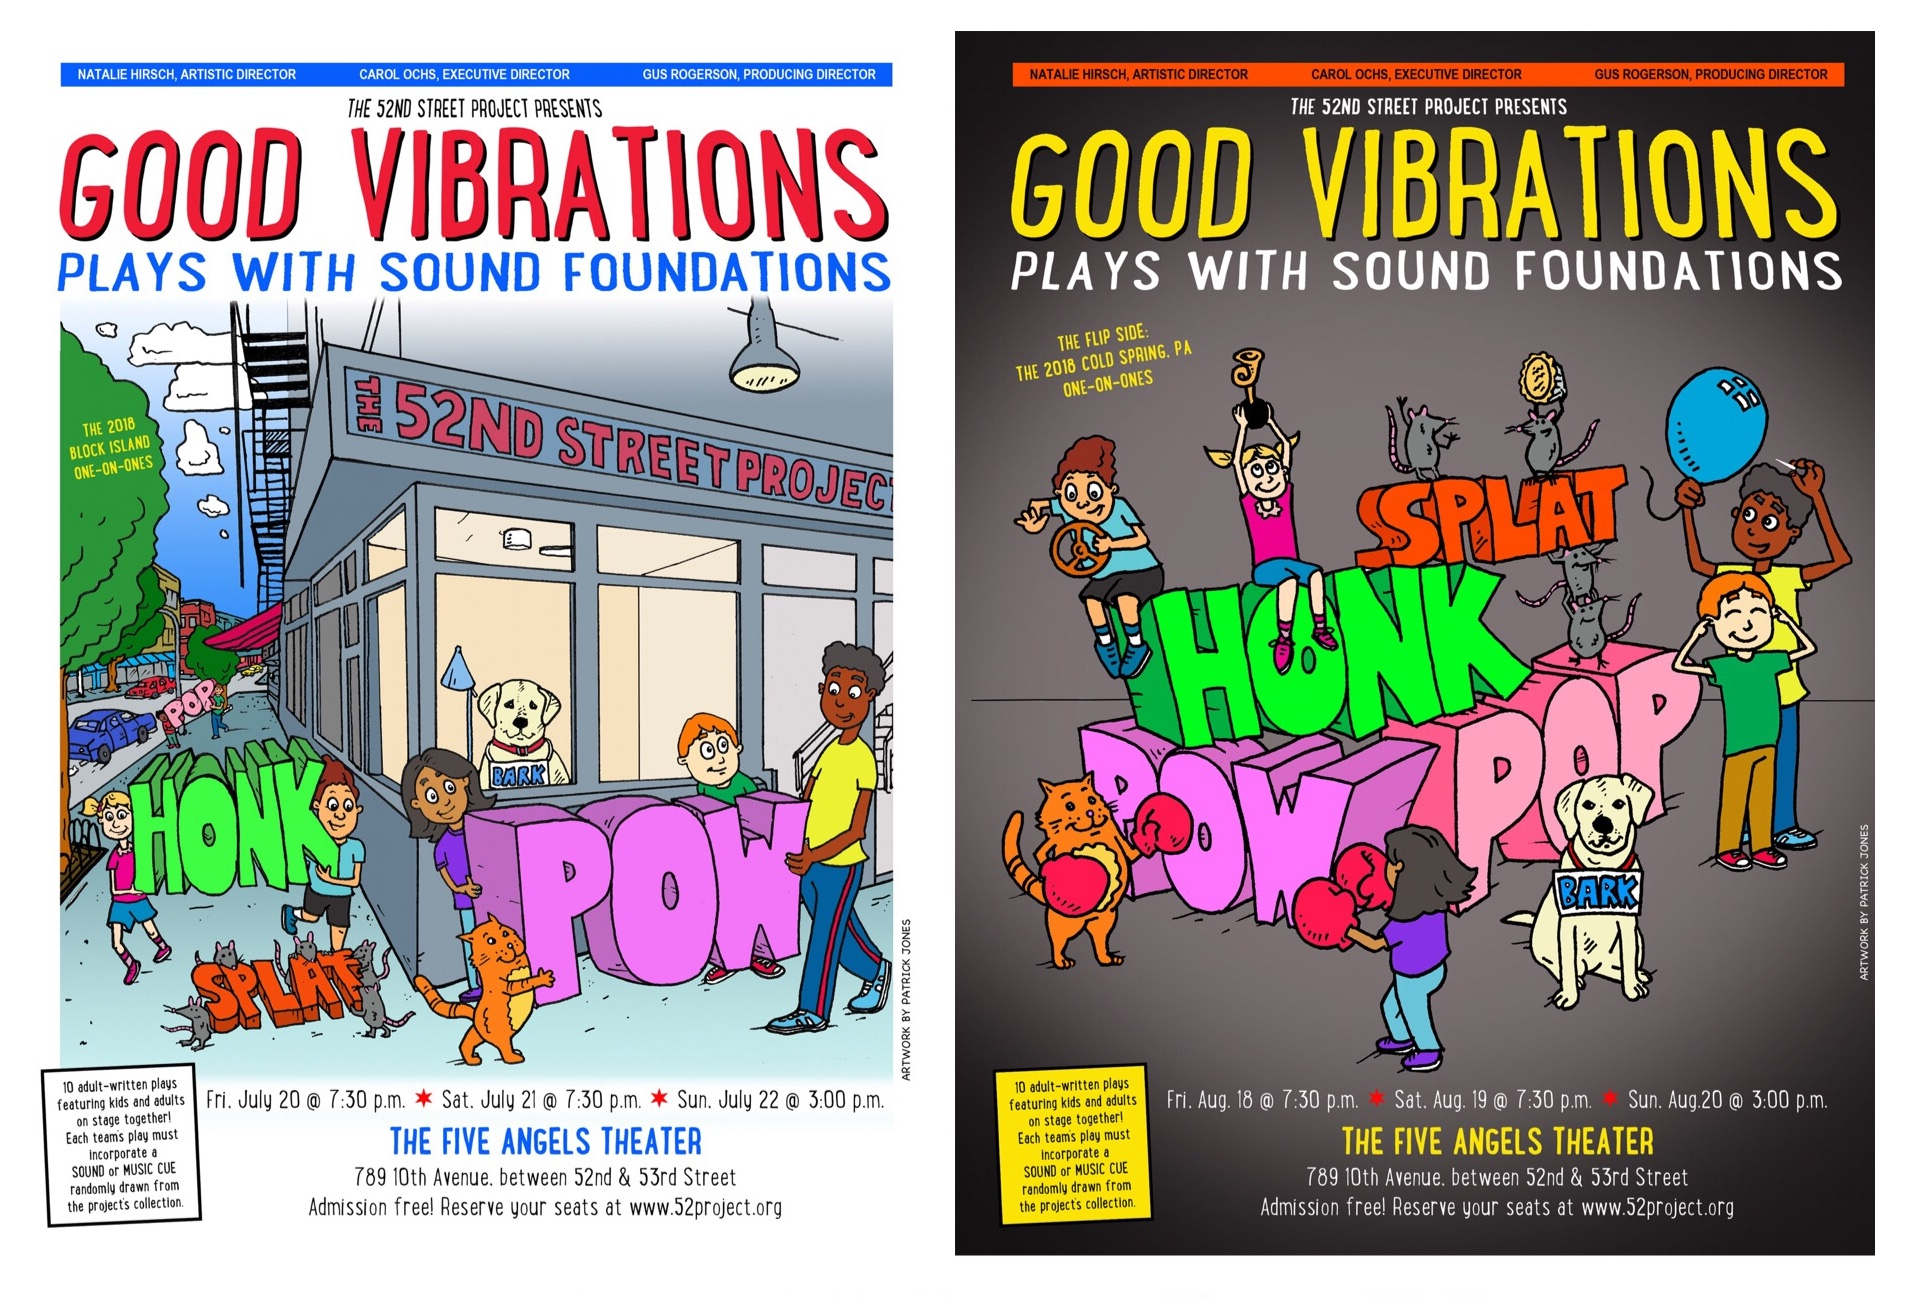 Drawings for the 52nd Street Project's summer 2018 posters - Patrick illustrated the posters for the 52nd Street Project's summer plays. George Babiak did the layout. Check them out on display on the corner of 52nd Street and 10th avenue in NYC and then go see the shows. More info HERE.